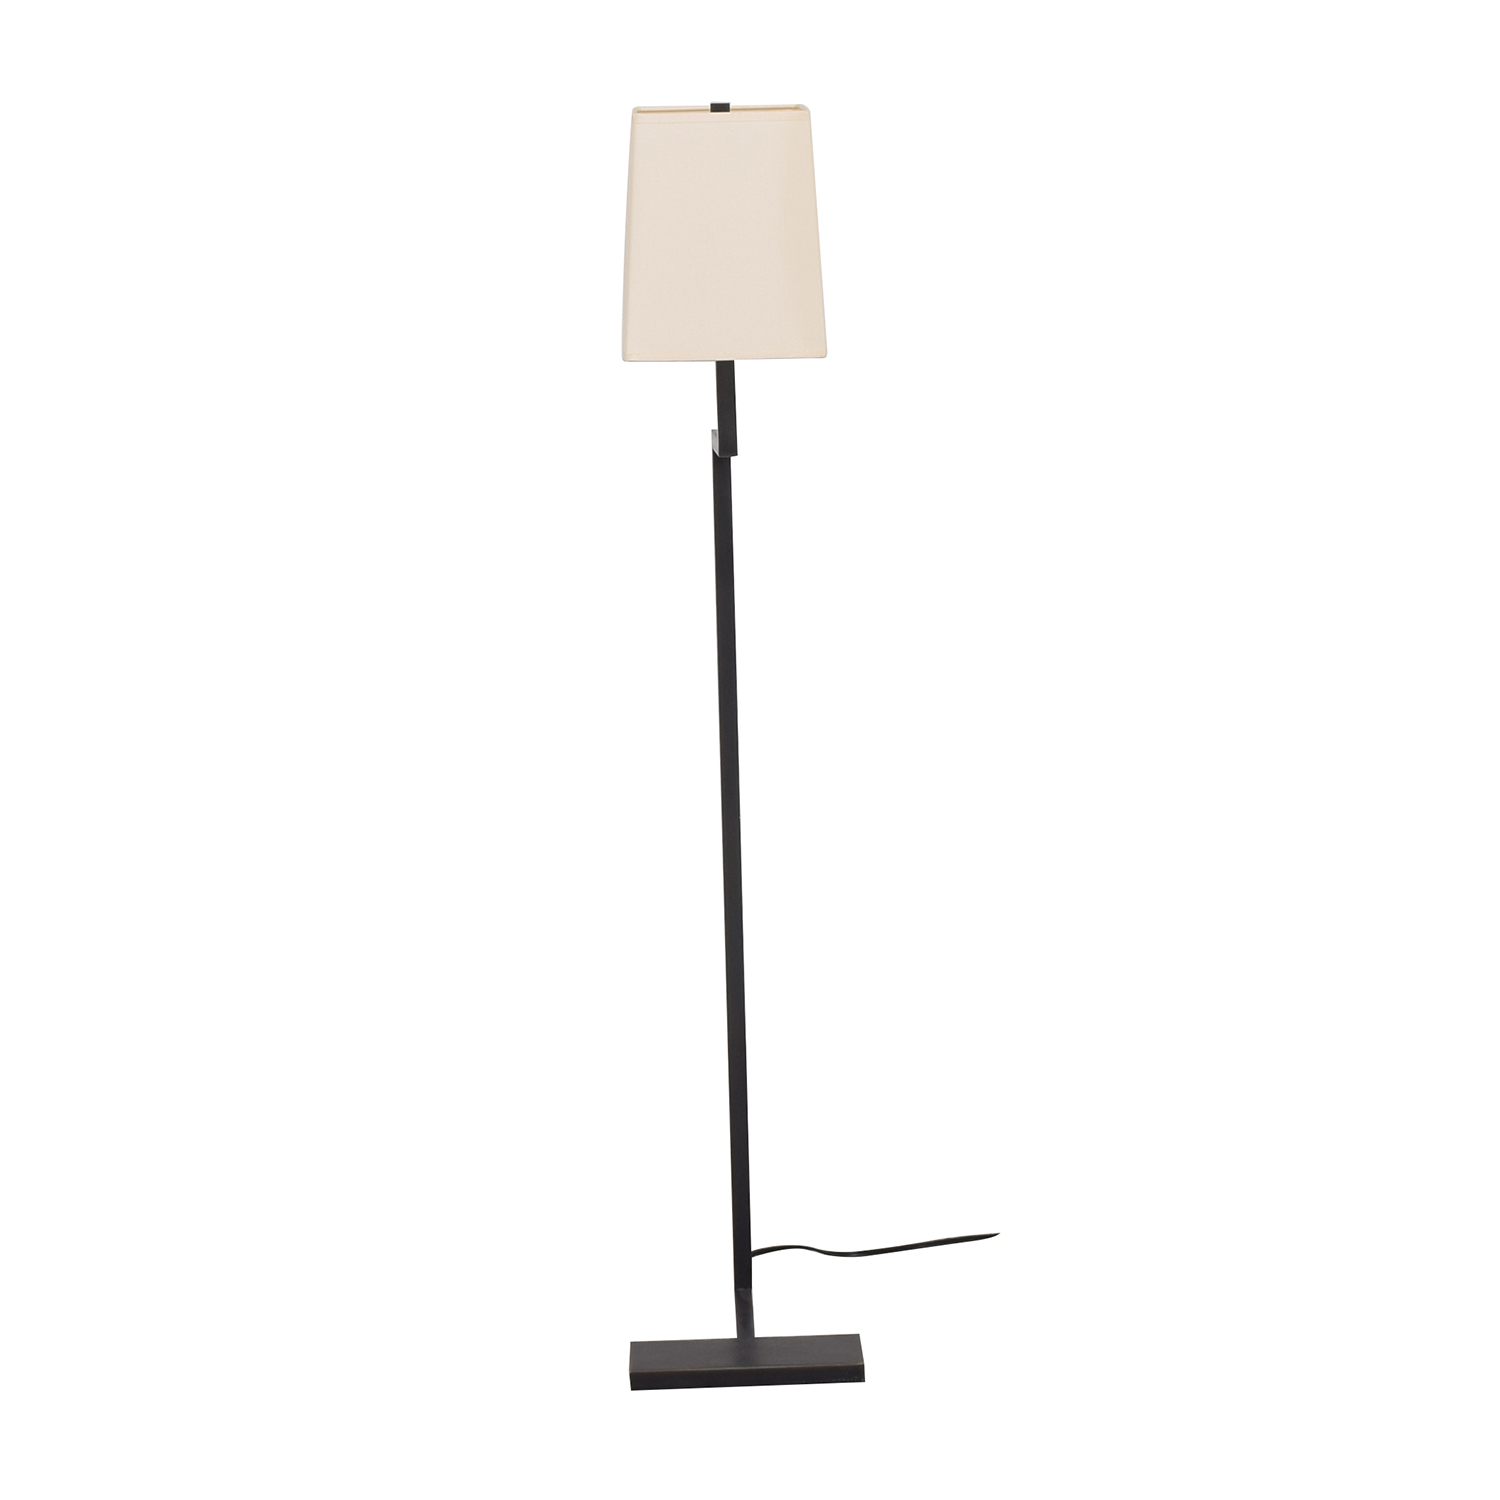 shop Crate & Barrel Crate & Barrel Floor Lamp online